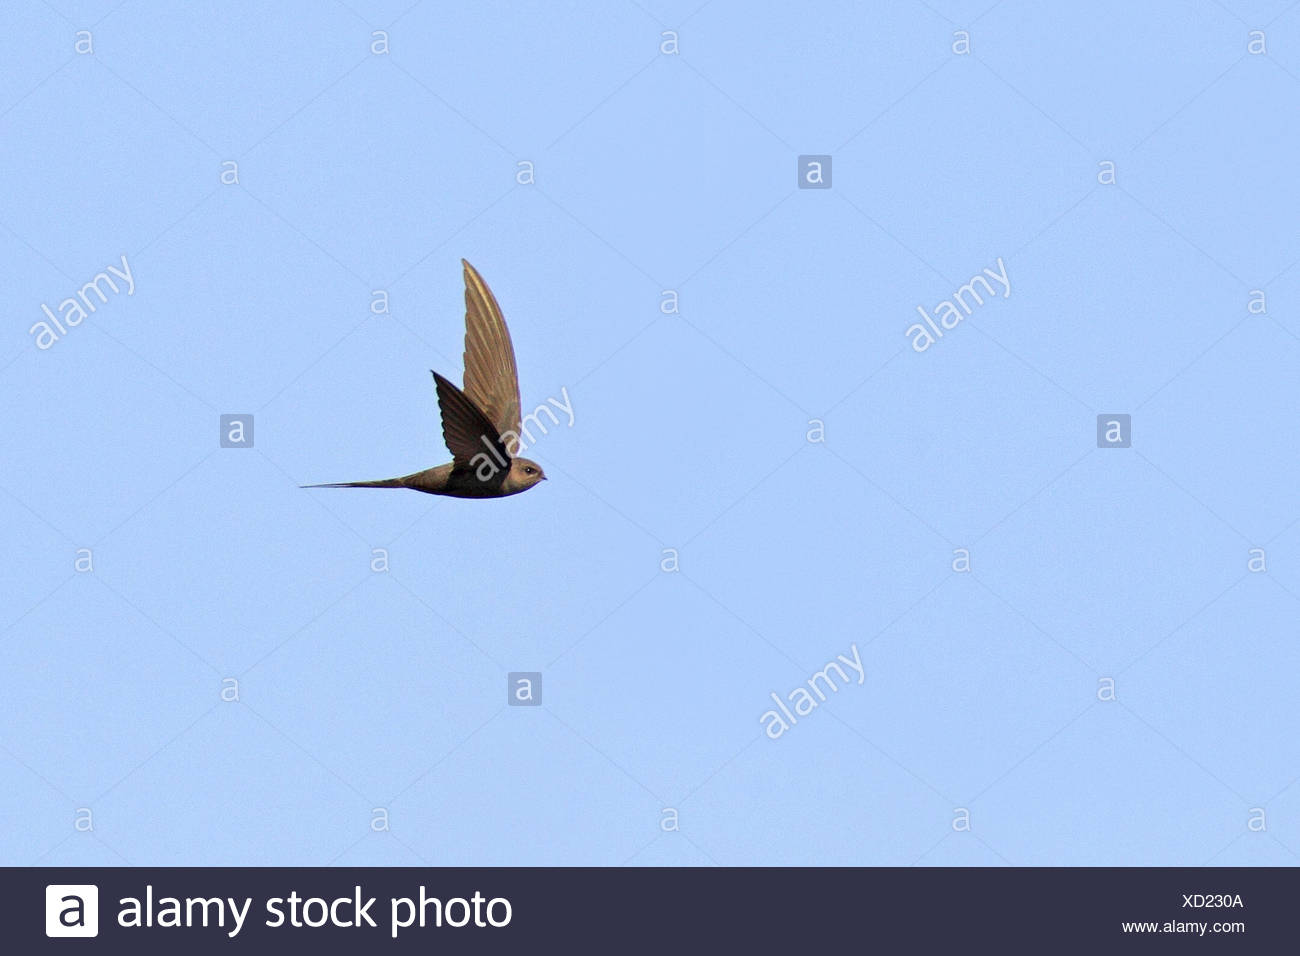 African palm swift (Cypsiurus parvus), flying bird, South Africa, Pilanesberg National Park - Stock Image